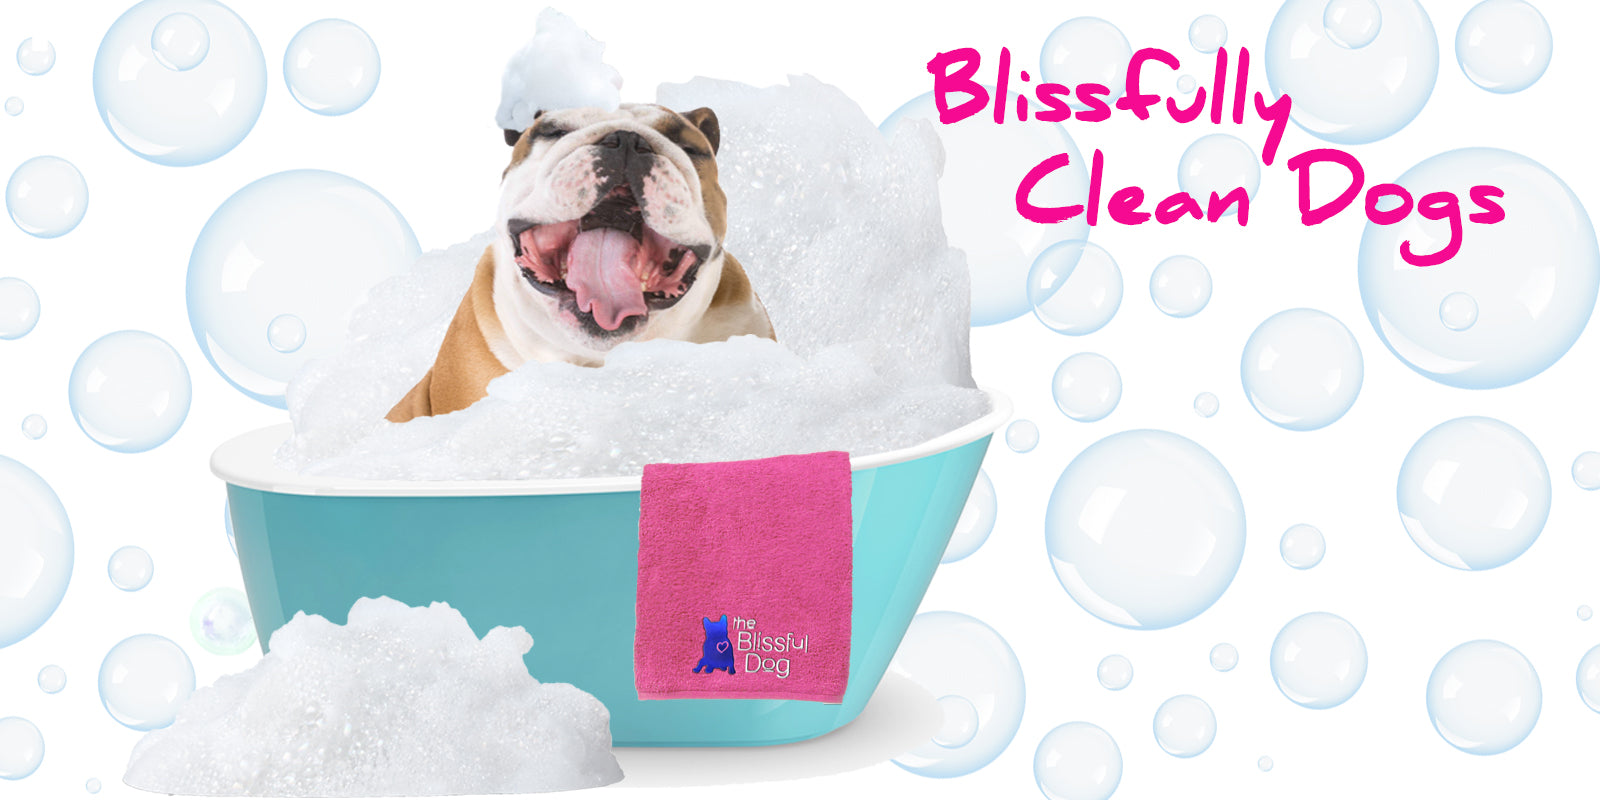 Blissfully Clean Dogs